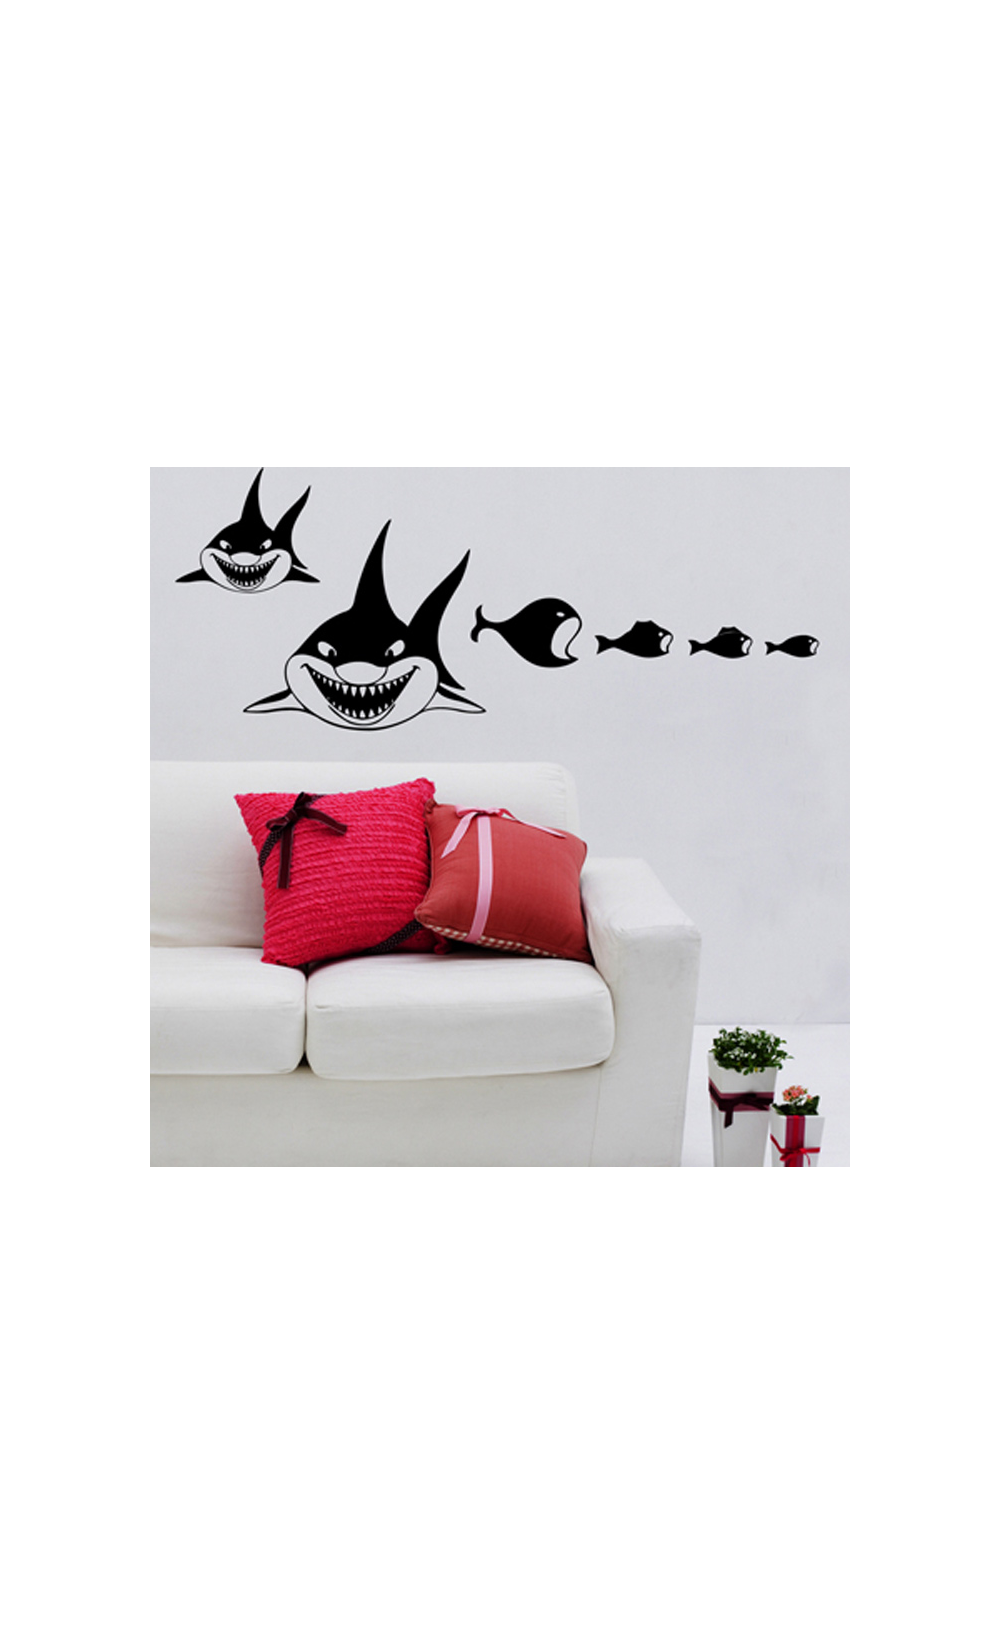 sticker mural pour d corer son int rieur petit prix mod le requins. Black Bedroom Furniture Sets. Home Design Ideas